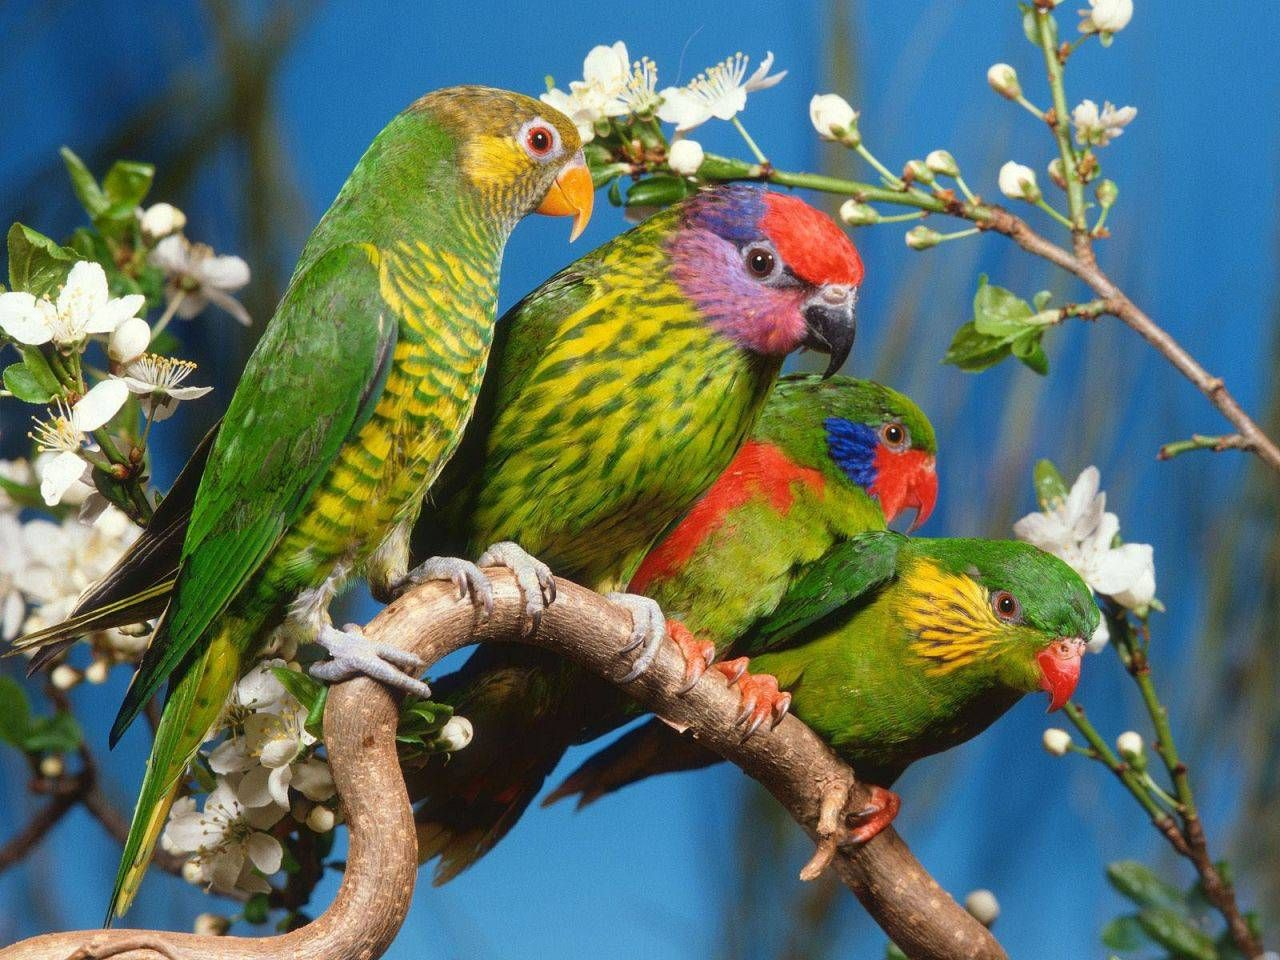 colourful birds wallpaper - beautiful birds wallpaper | birds of a